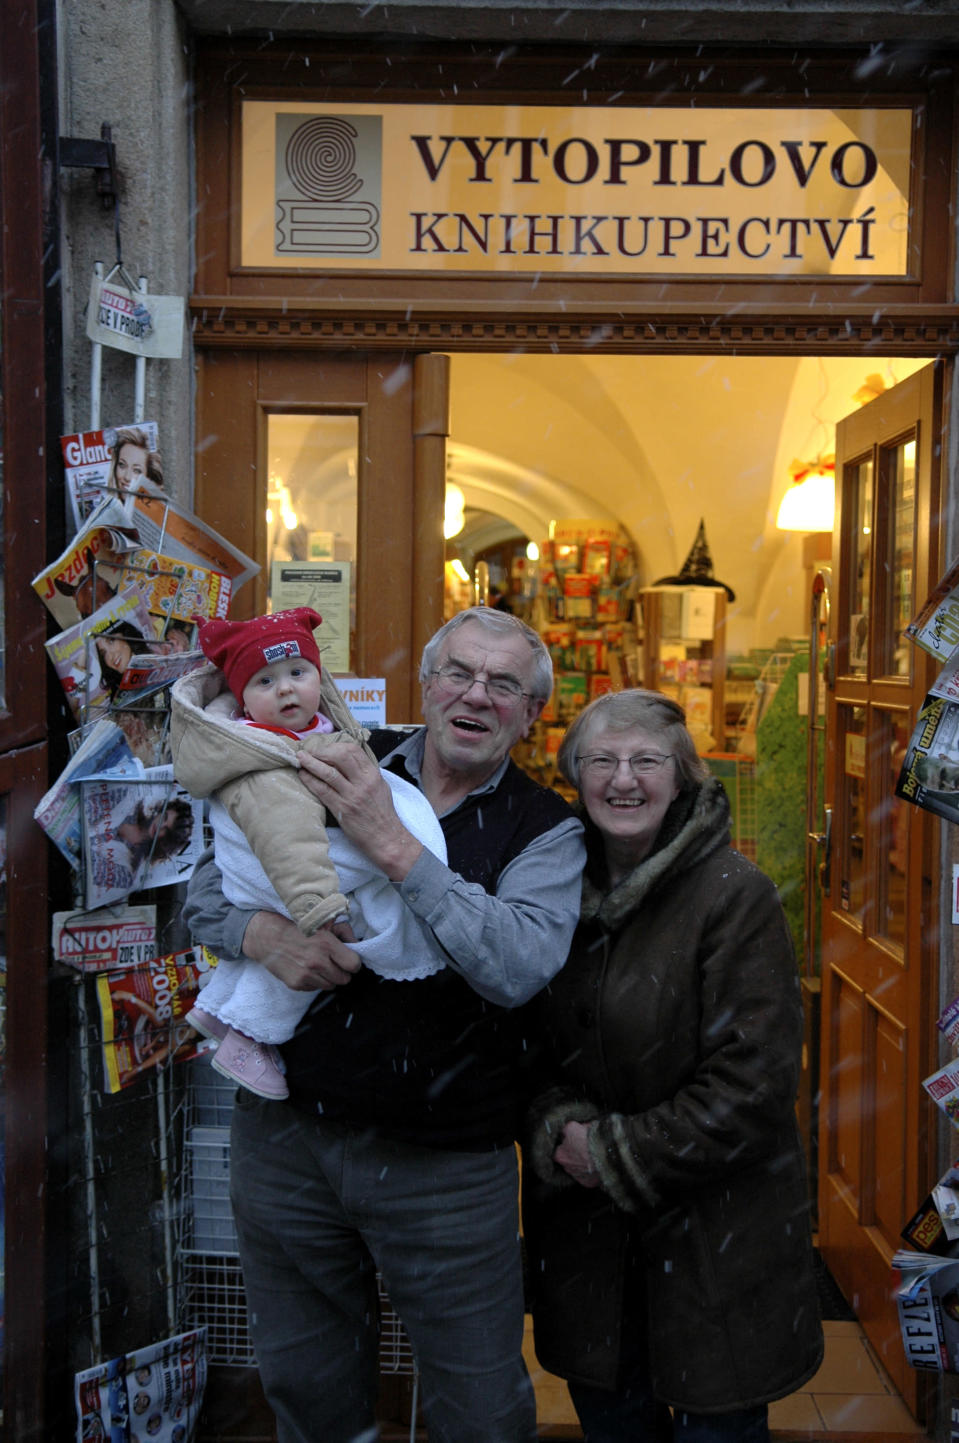 Jaromir Vytopil poses for a photo with a child in front of his bookstore in Pelhrimov, Czech Republic, Saturday, May 29, 2010. Some 25,000 have been killed by COVID-19 in the hard-hit Czech Republic. Jaromir Vytopil was one of them. His everyday presence in the small Czech town of Pelhrimov was something everybody took for granted for seven decades as he had served the generations of readers. The longest serving Czech bookseller, passed away on Nov 9. 2020, at age of 83. (AP Photo/Jan Vytopil)